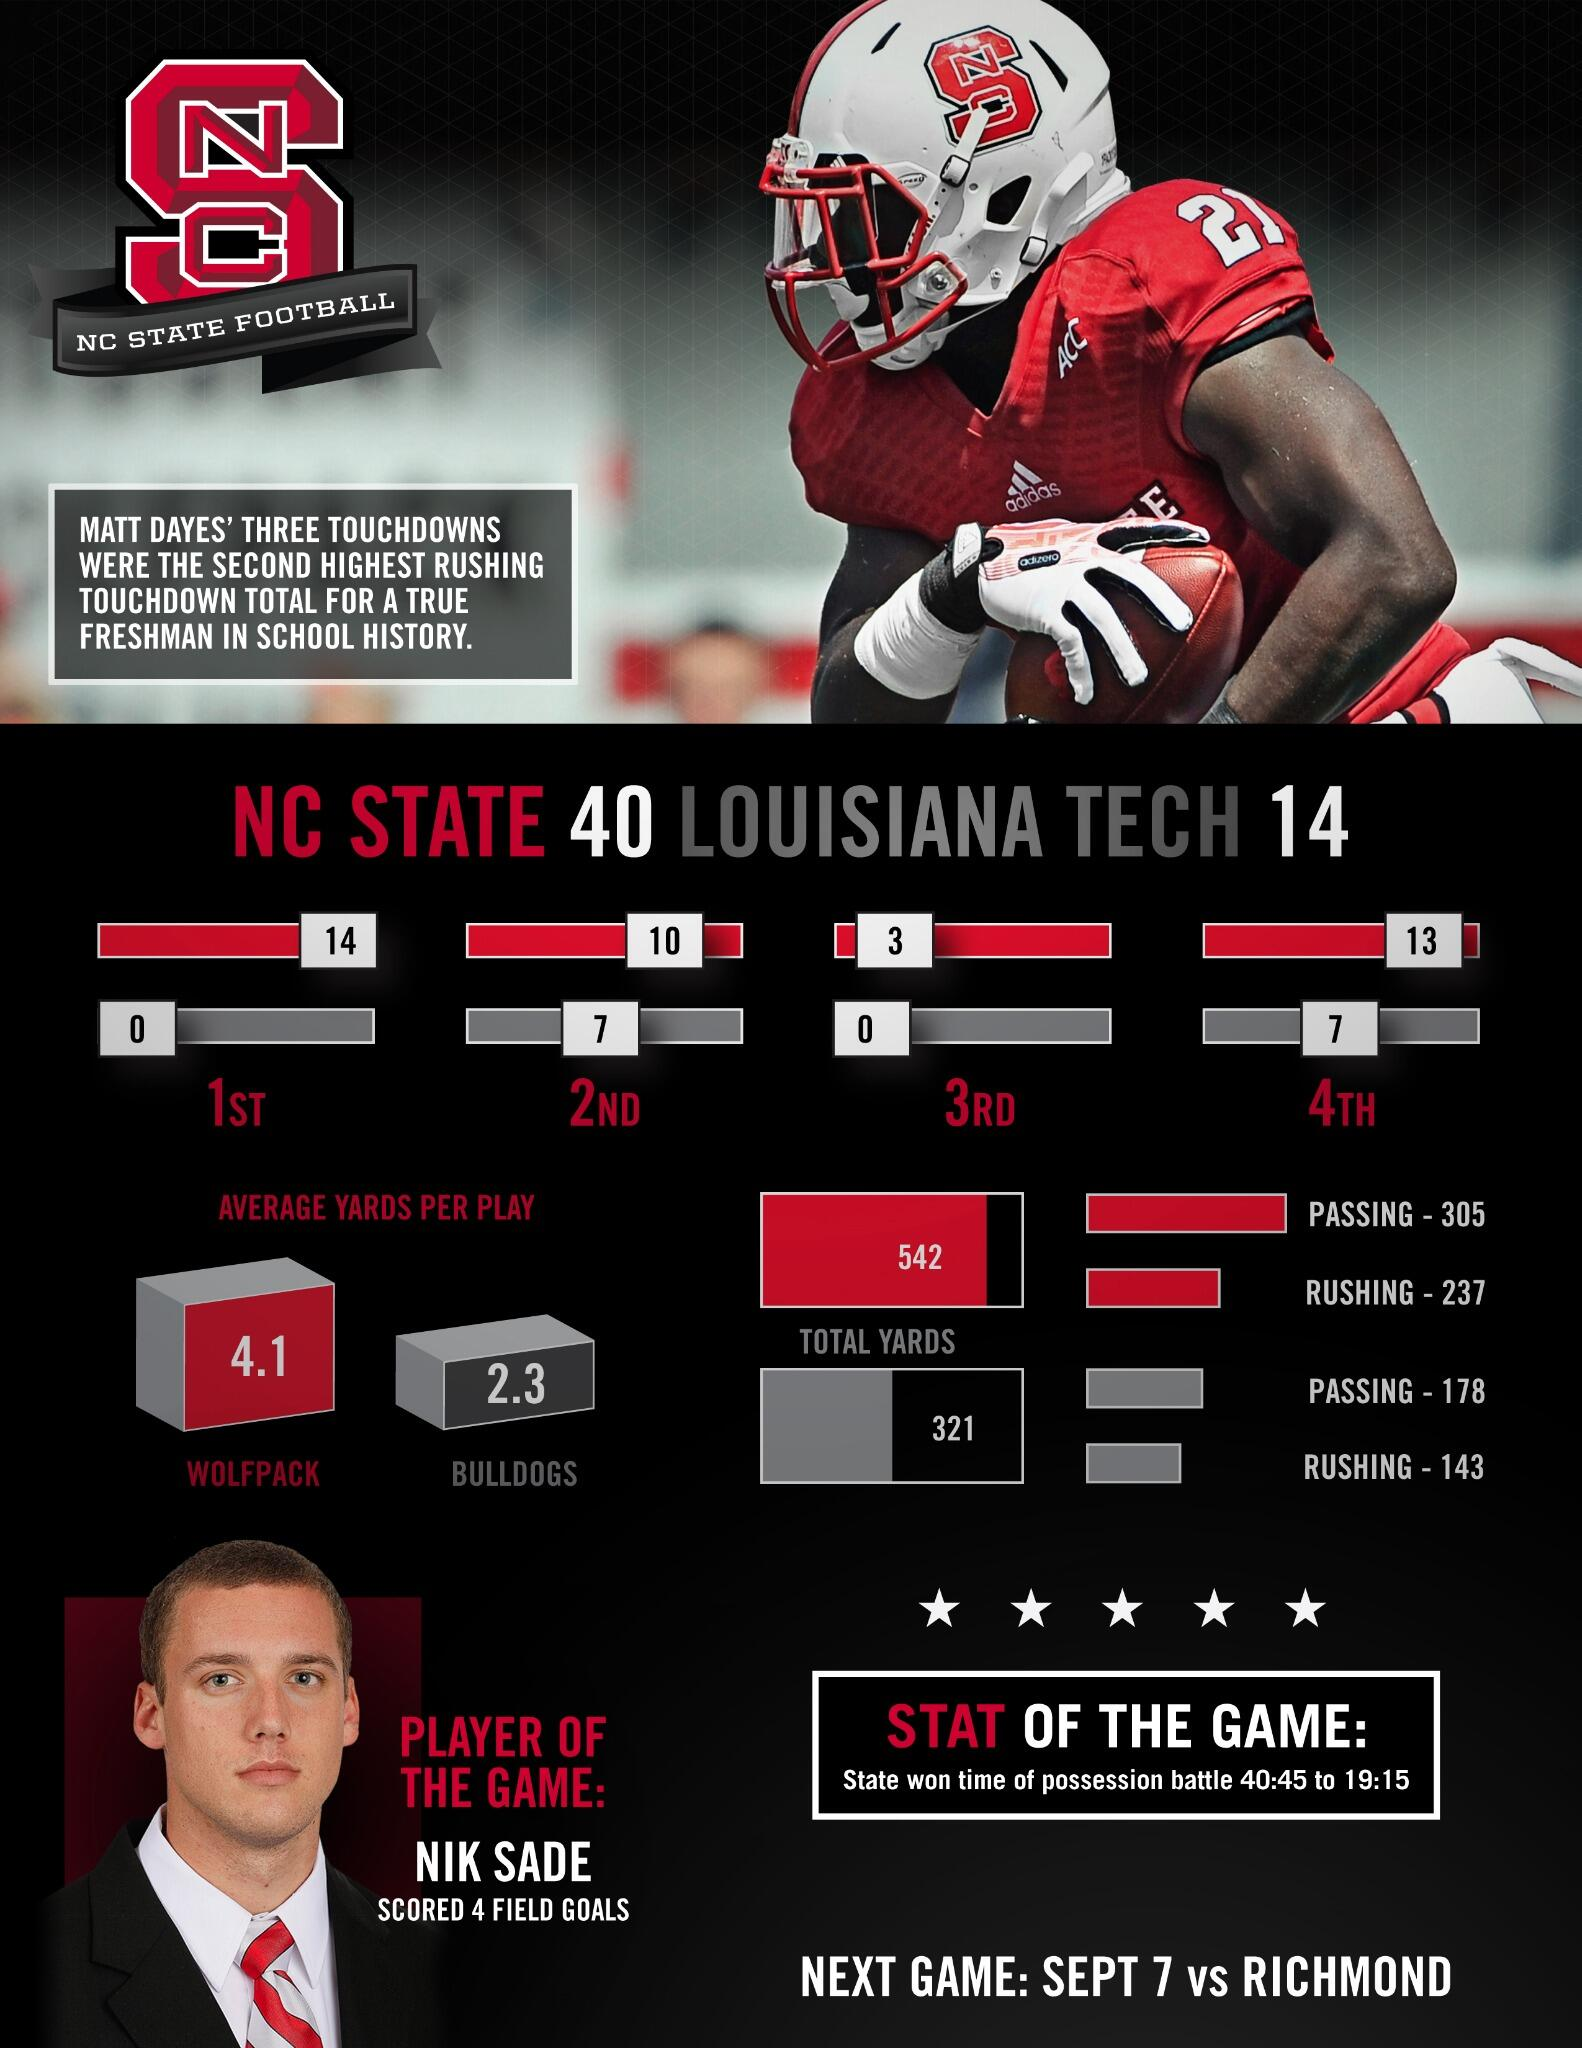 Check out the infographic from today's game: http://t.co/gE1Bo5LtUZ